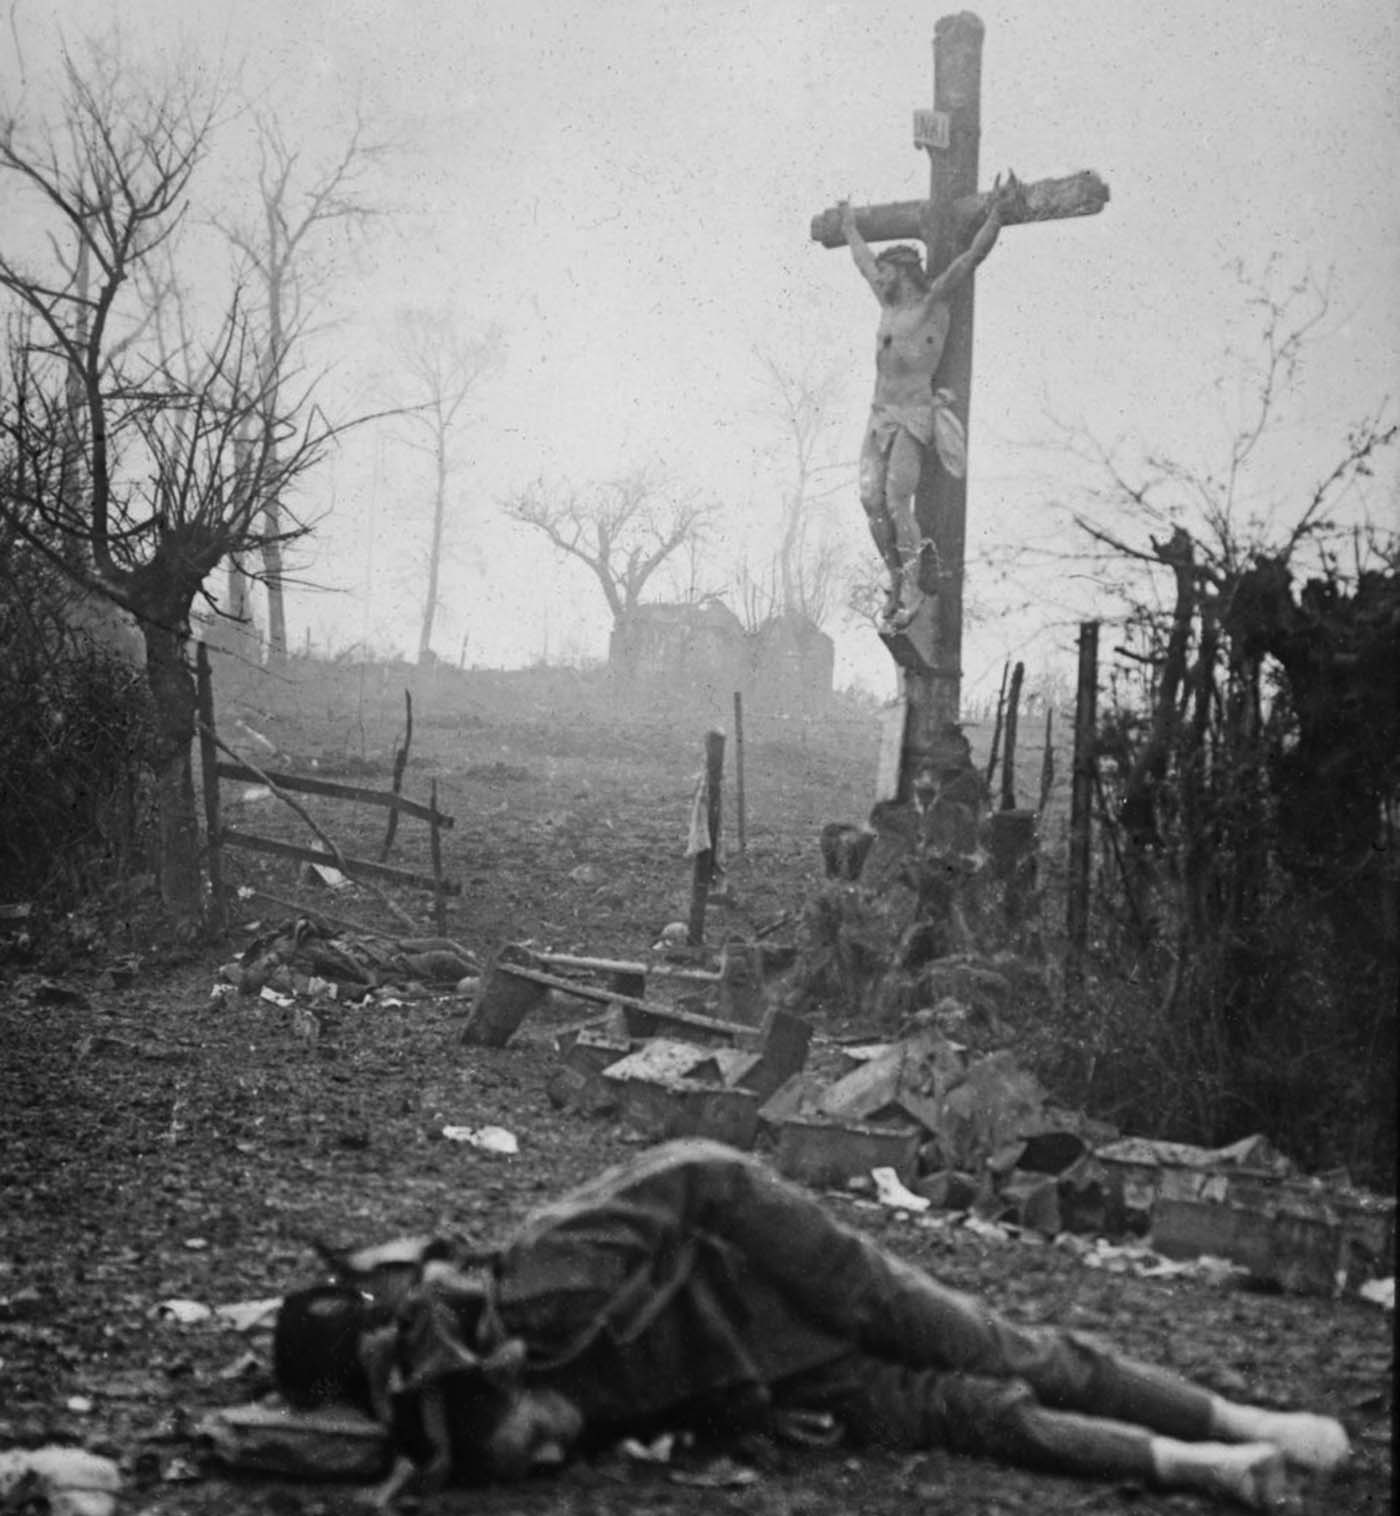 Walter Kleinfeldt's album showing the aftermath of a skirmish during the Battle of Somme, 1916 (7).jpg